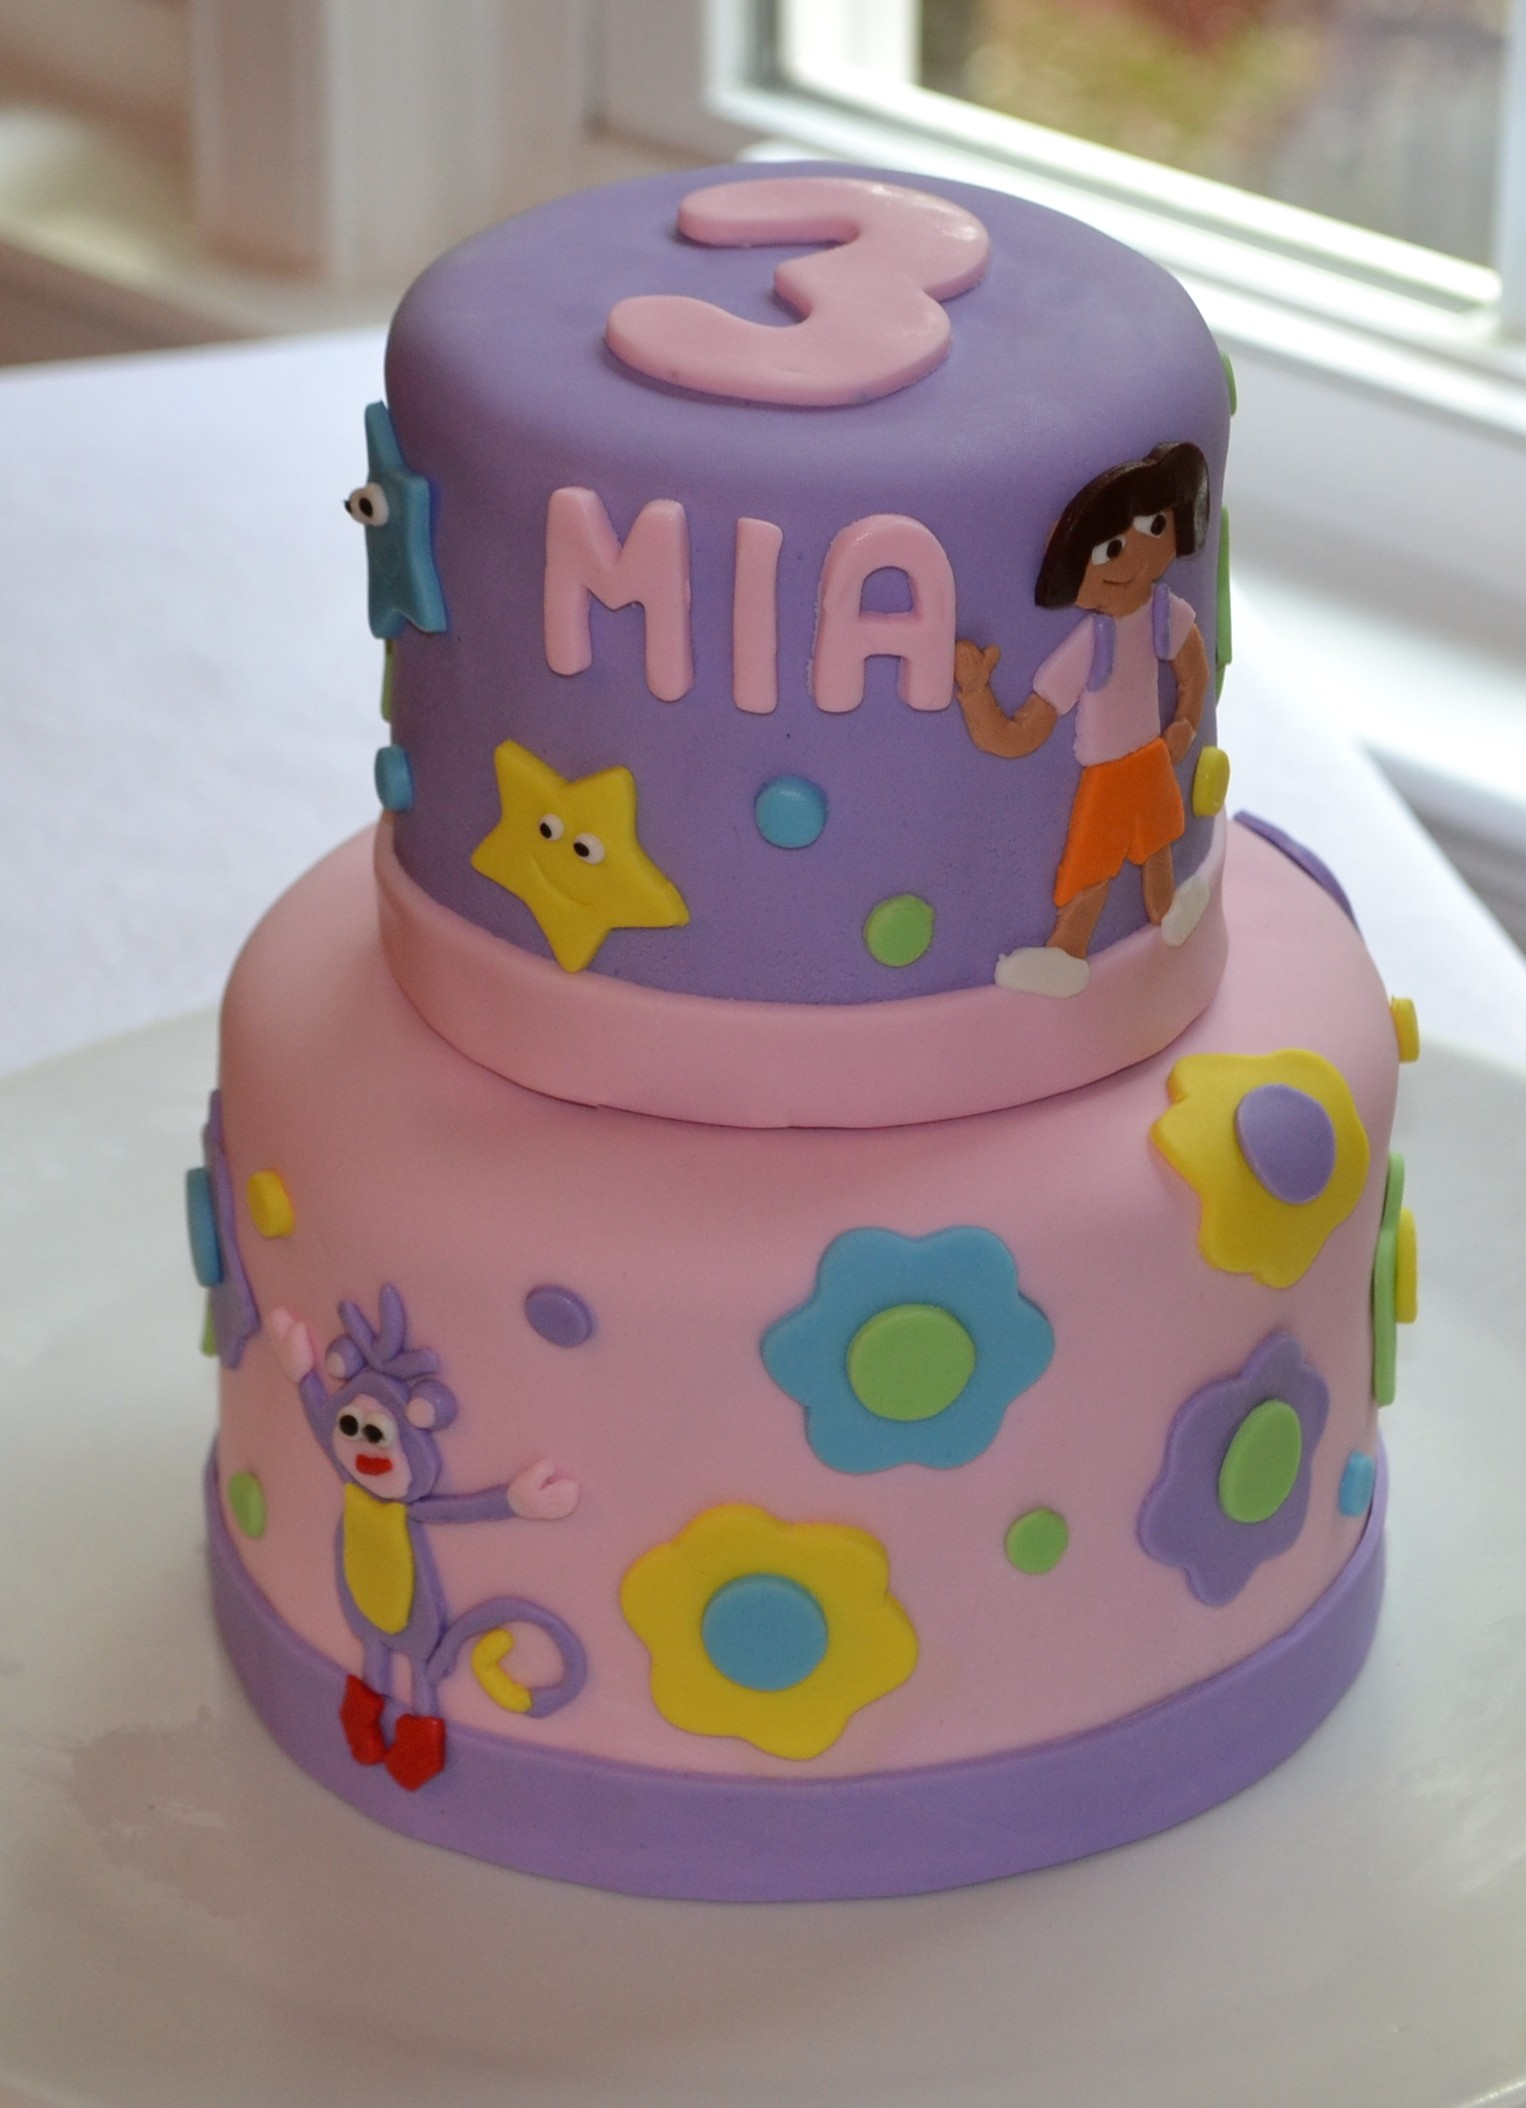 Cake Designs Dora The Explorer : Dora the Explorer Birthday Cake